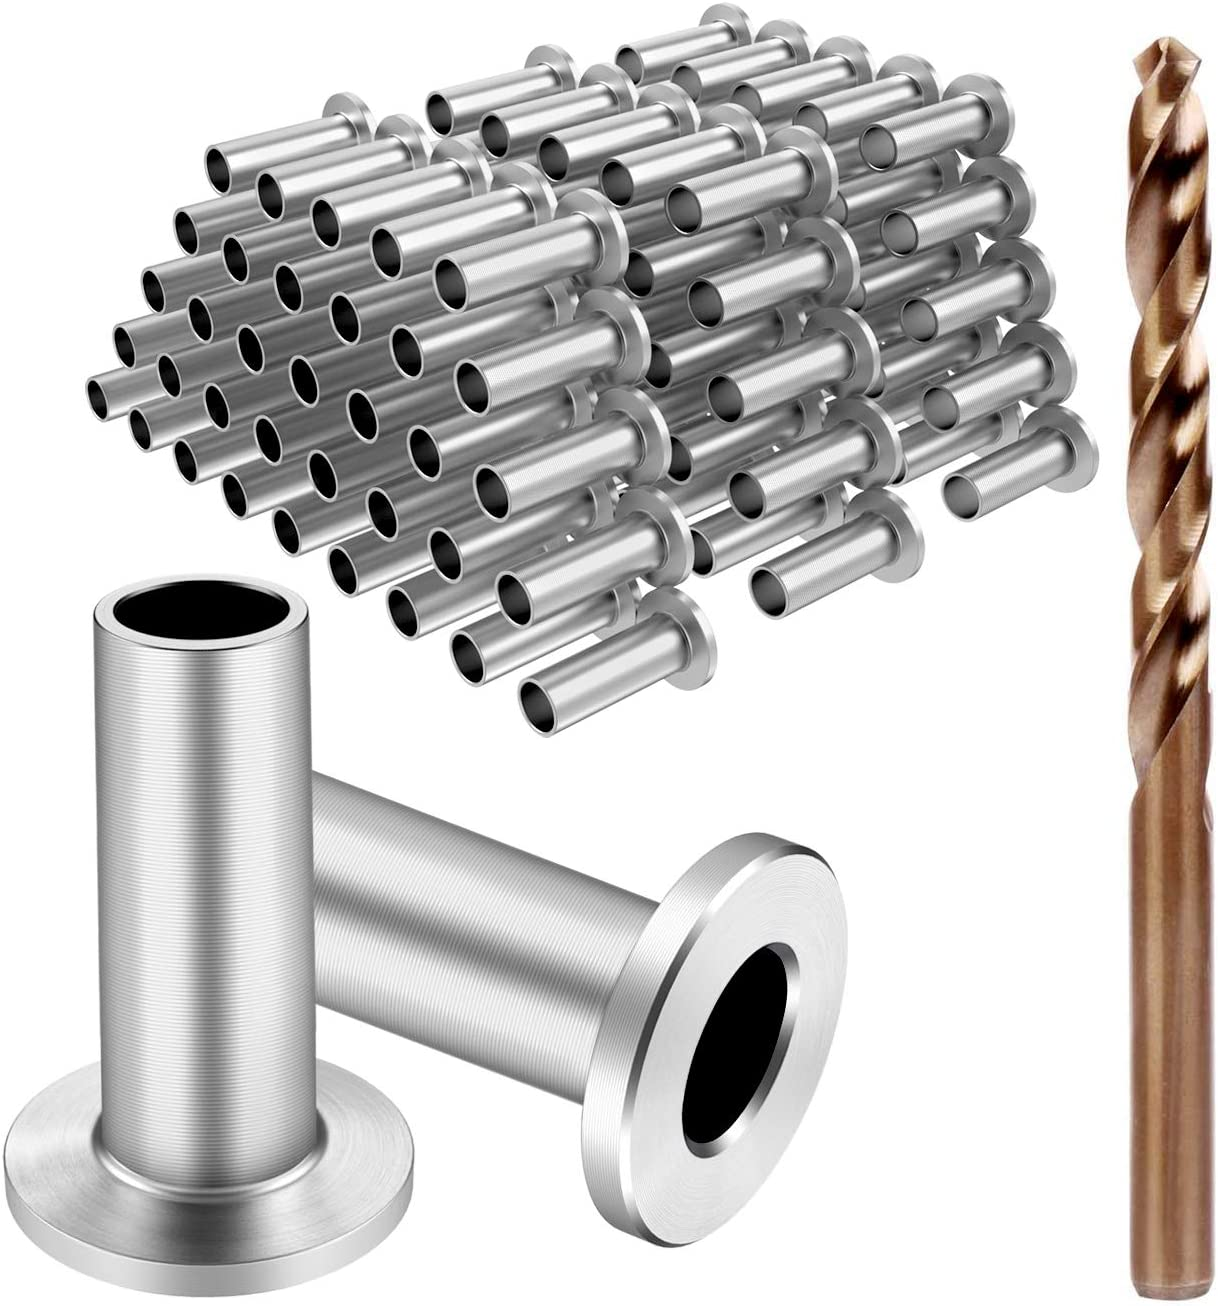 DIY Balustrade CKE 40 Pack T316 Marine Grade Stainless Steel 30 Degree Angle Beveled Protector Sleeves Wood Post Protector for 1//8 Wire Rope Cable Railing Patent Design Come with a Free Drill Bit